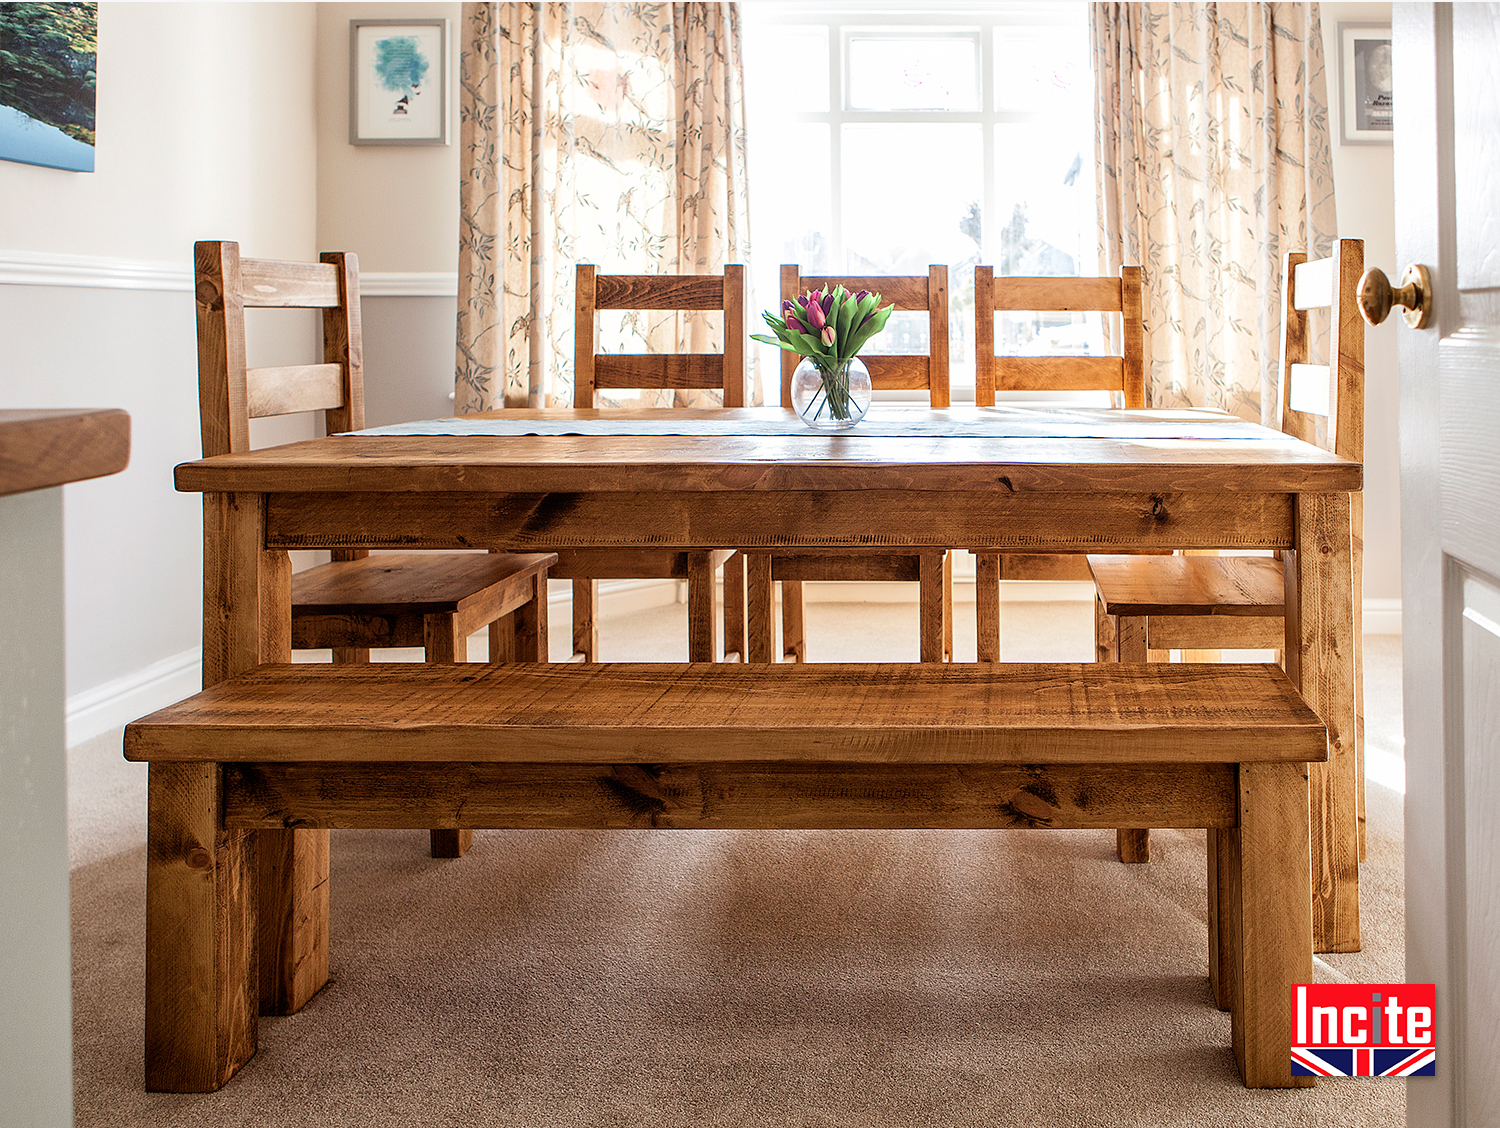 Farmhouse Kitchen Tables Uk Plank Wood Farmhouse Kitchen Table Handcrafted By Incite